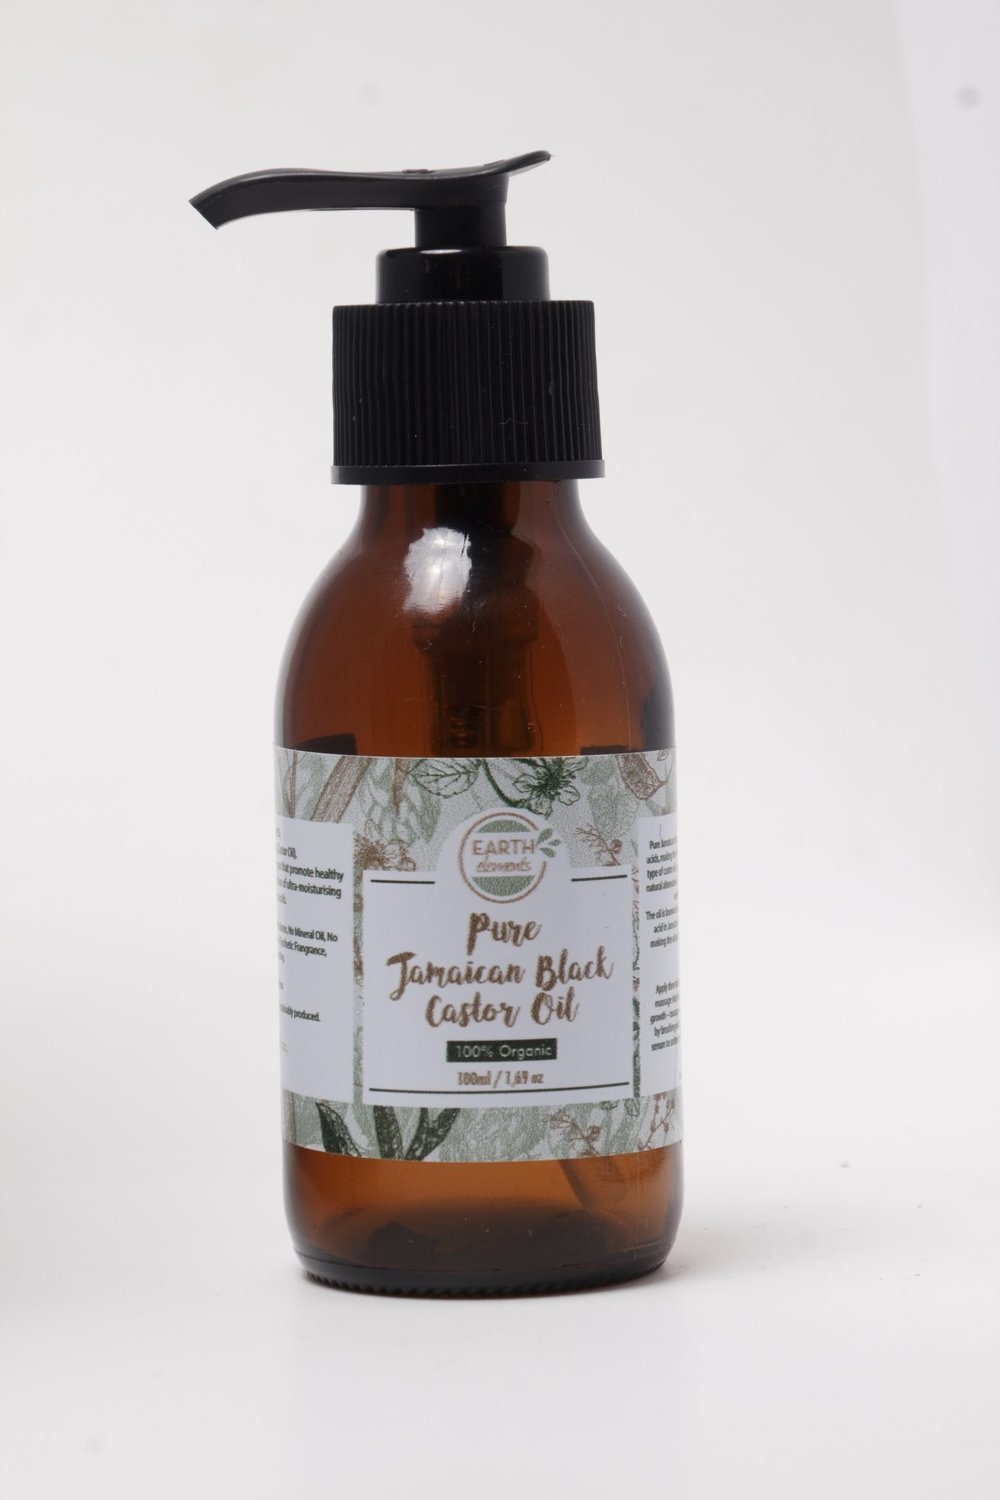 Pure Jamaican Black Castor Oil - grow strong, healthy hair and eliminate scalp conditions